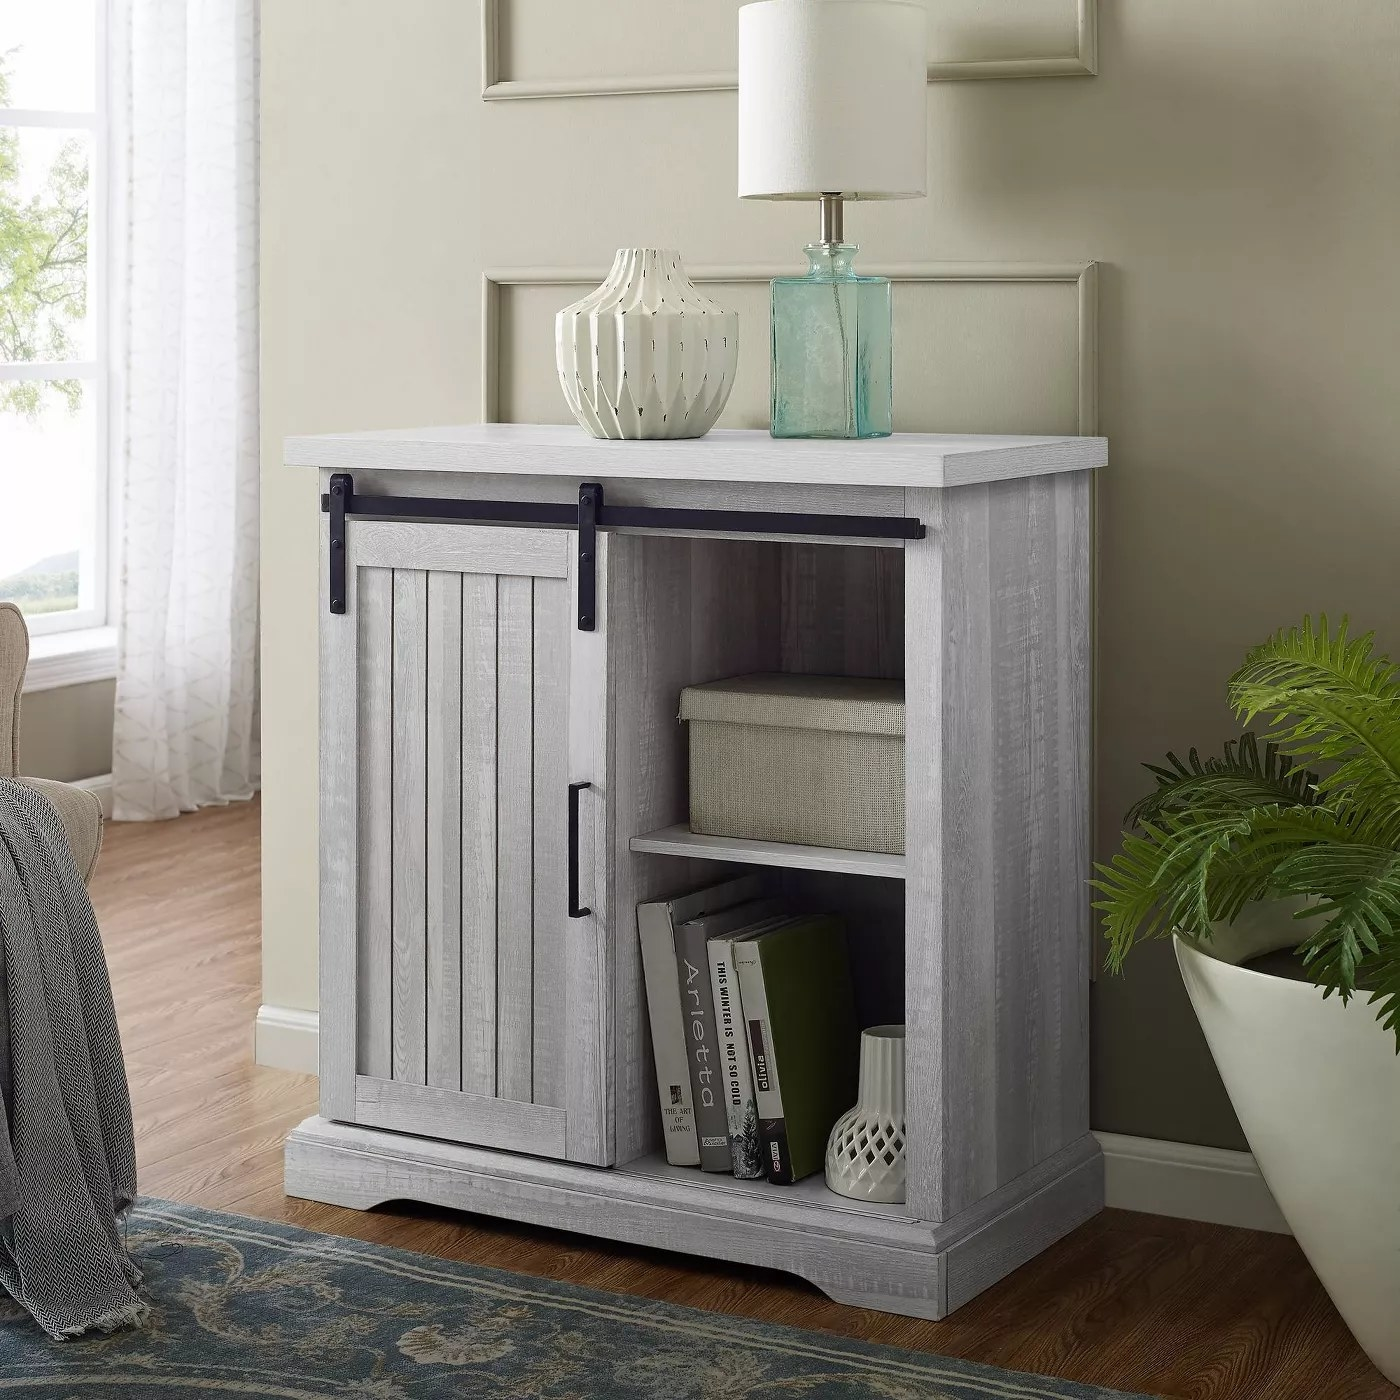 The white wooden barndoor console